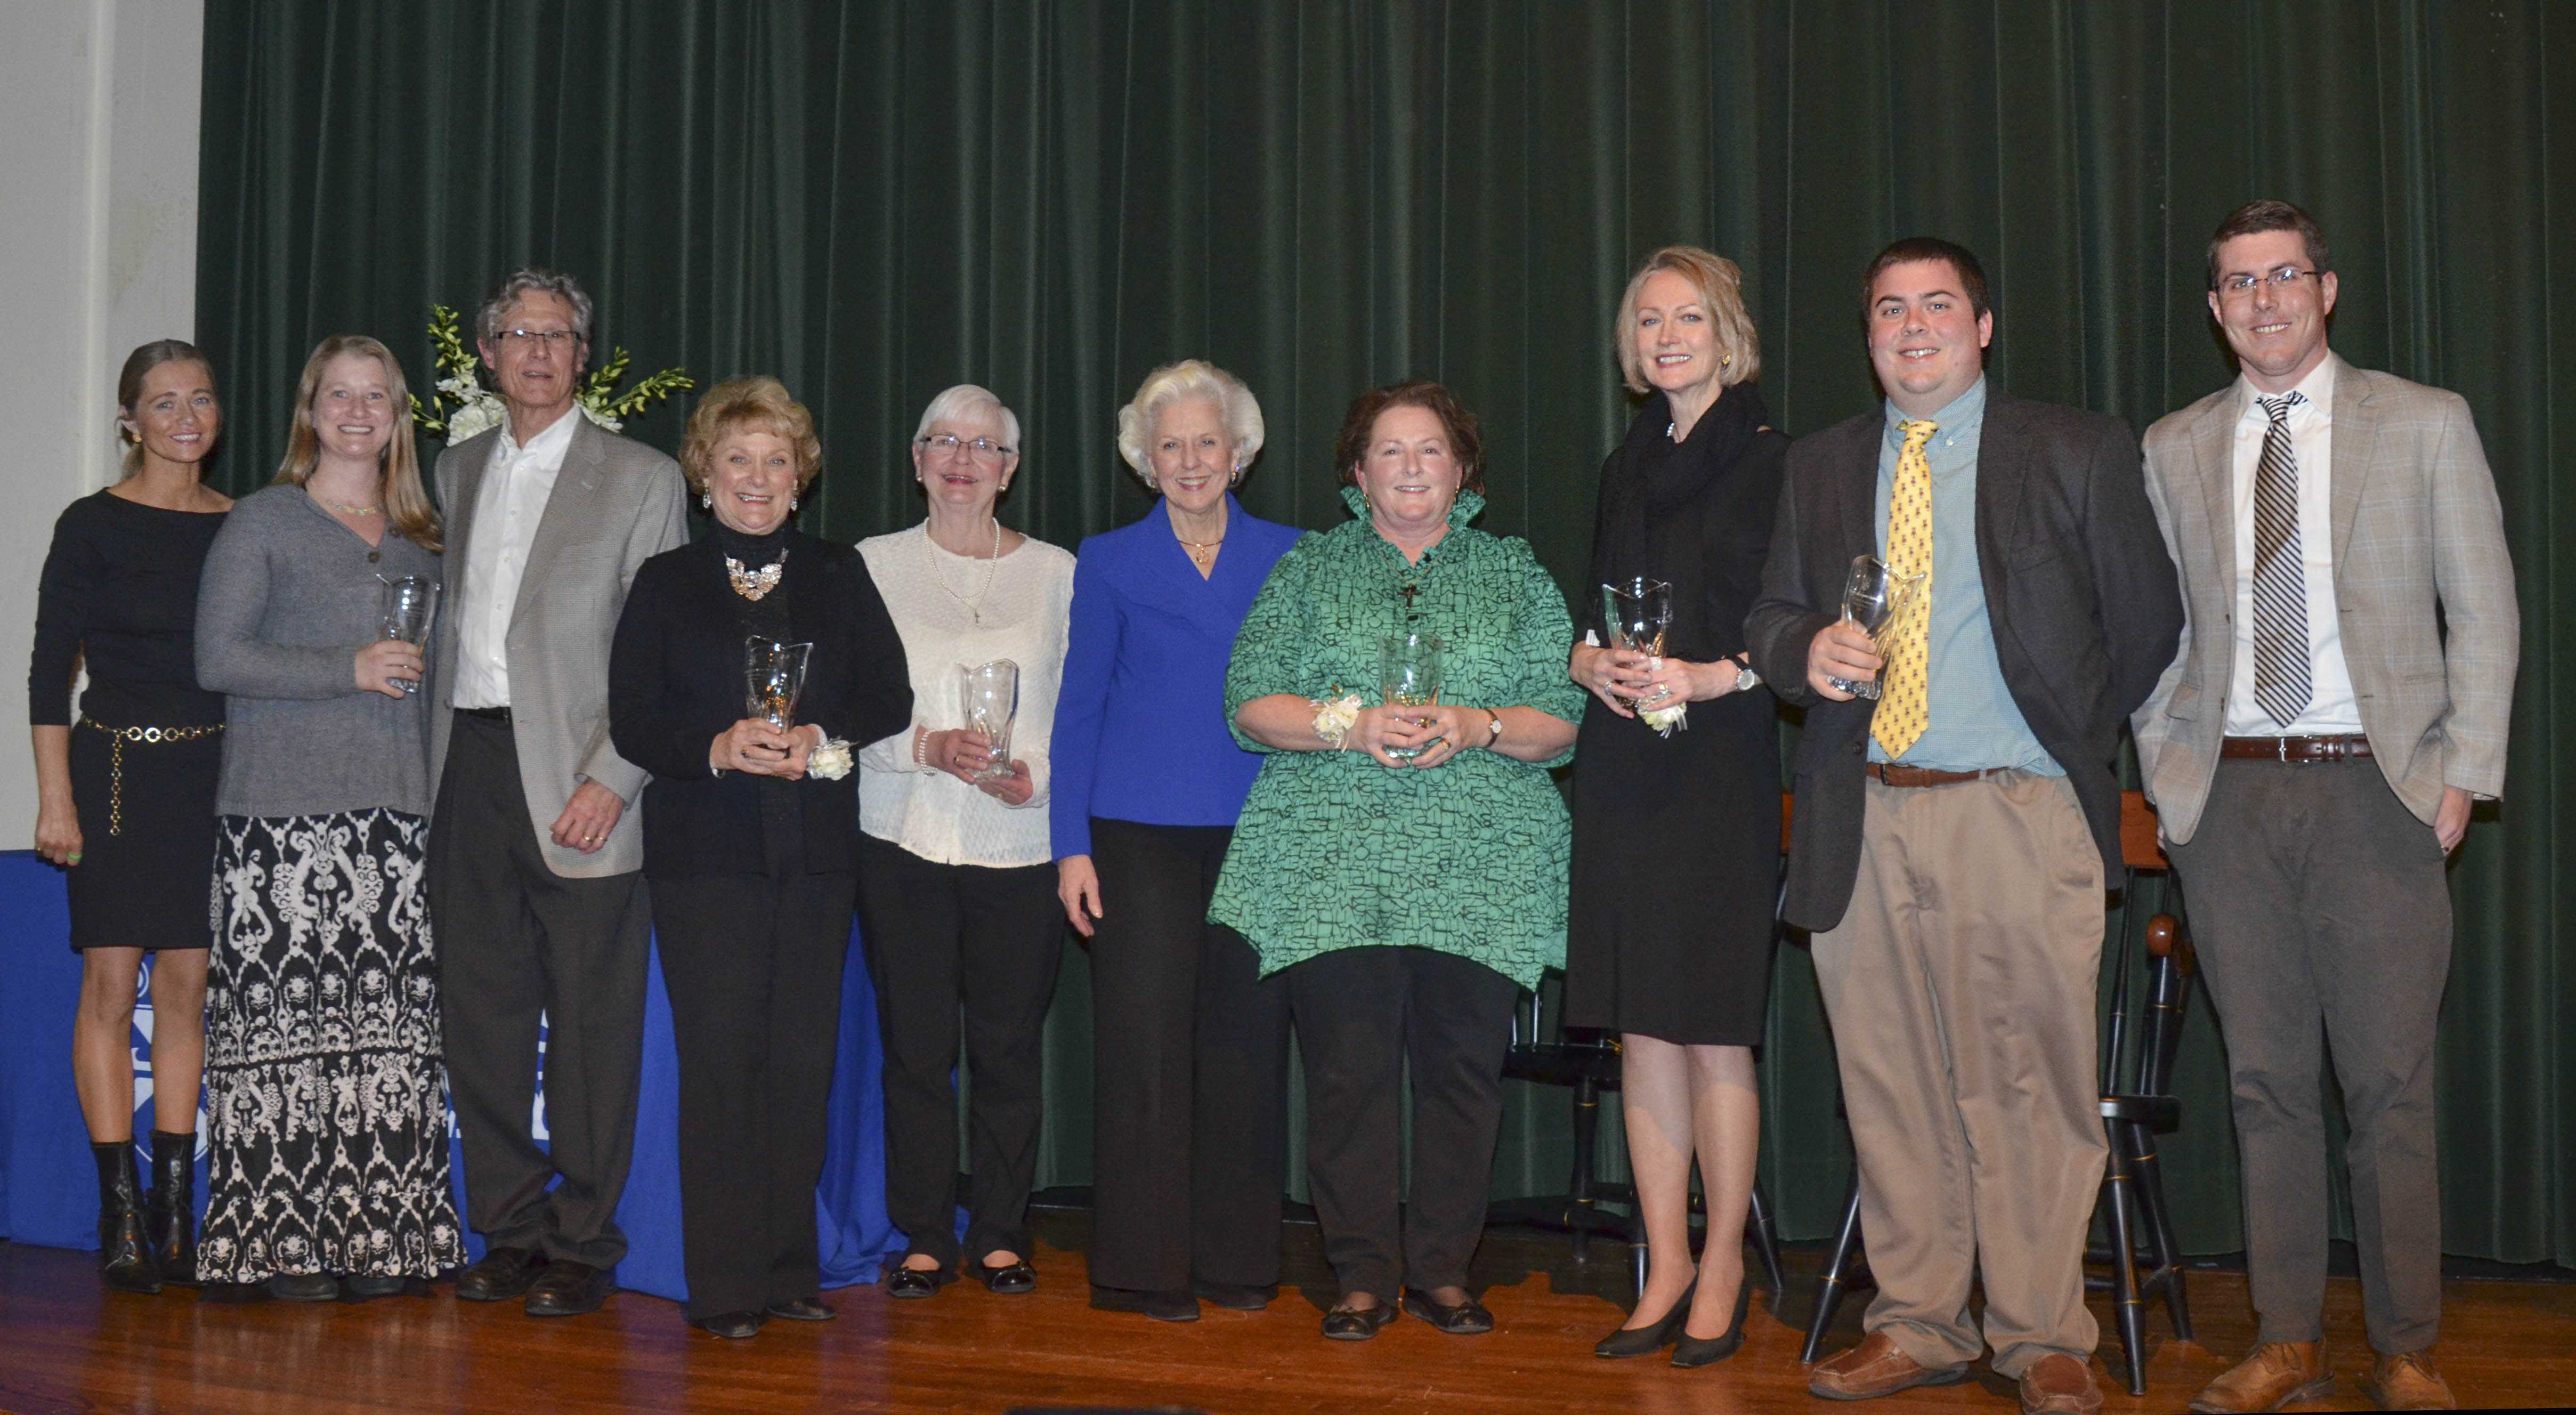 Hall of Fame | St. Agnes Academy-St. Dominic School